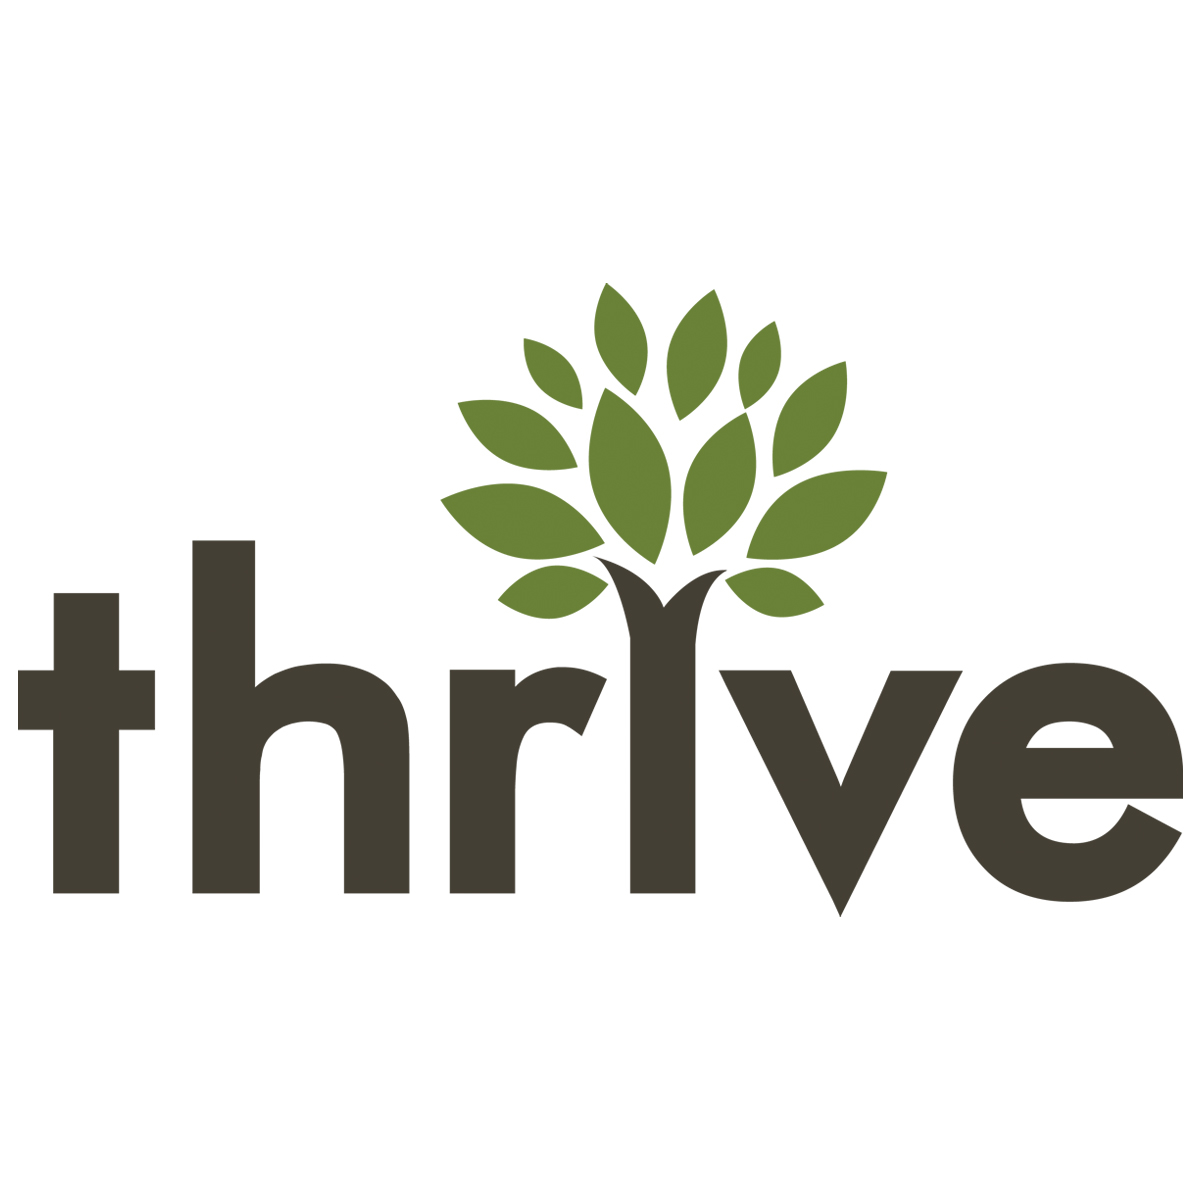 Thrive Internet Marketing Agency image 3